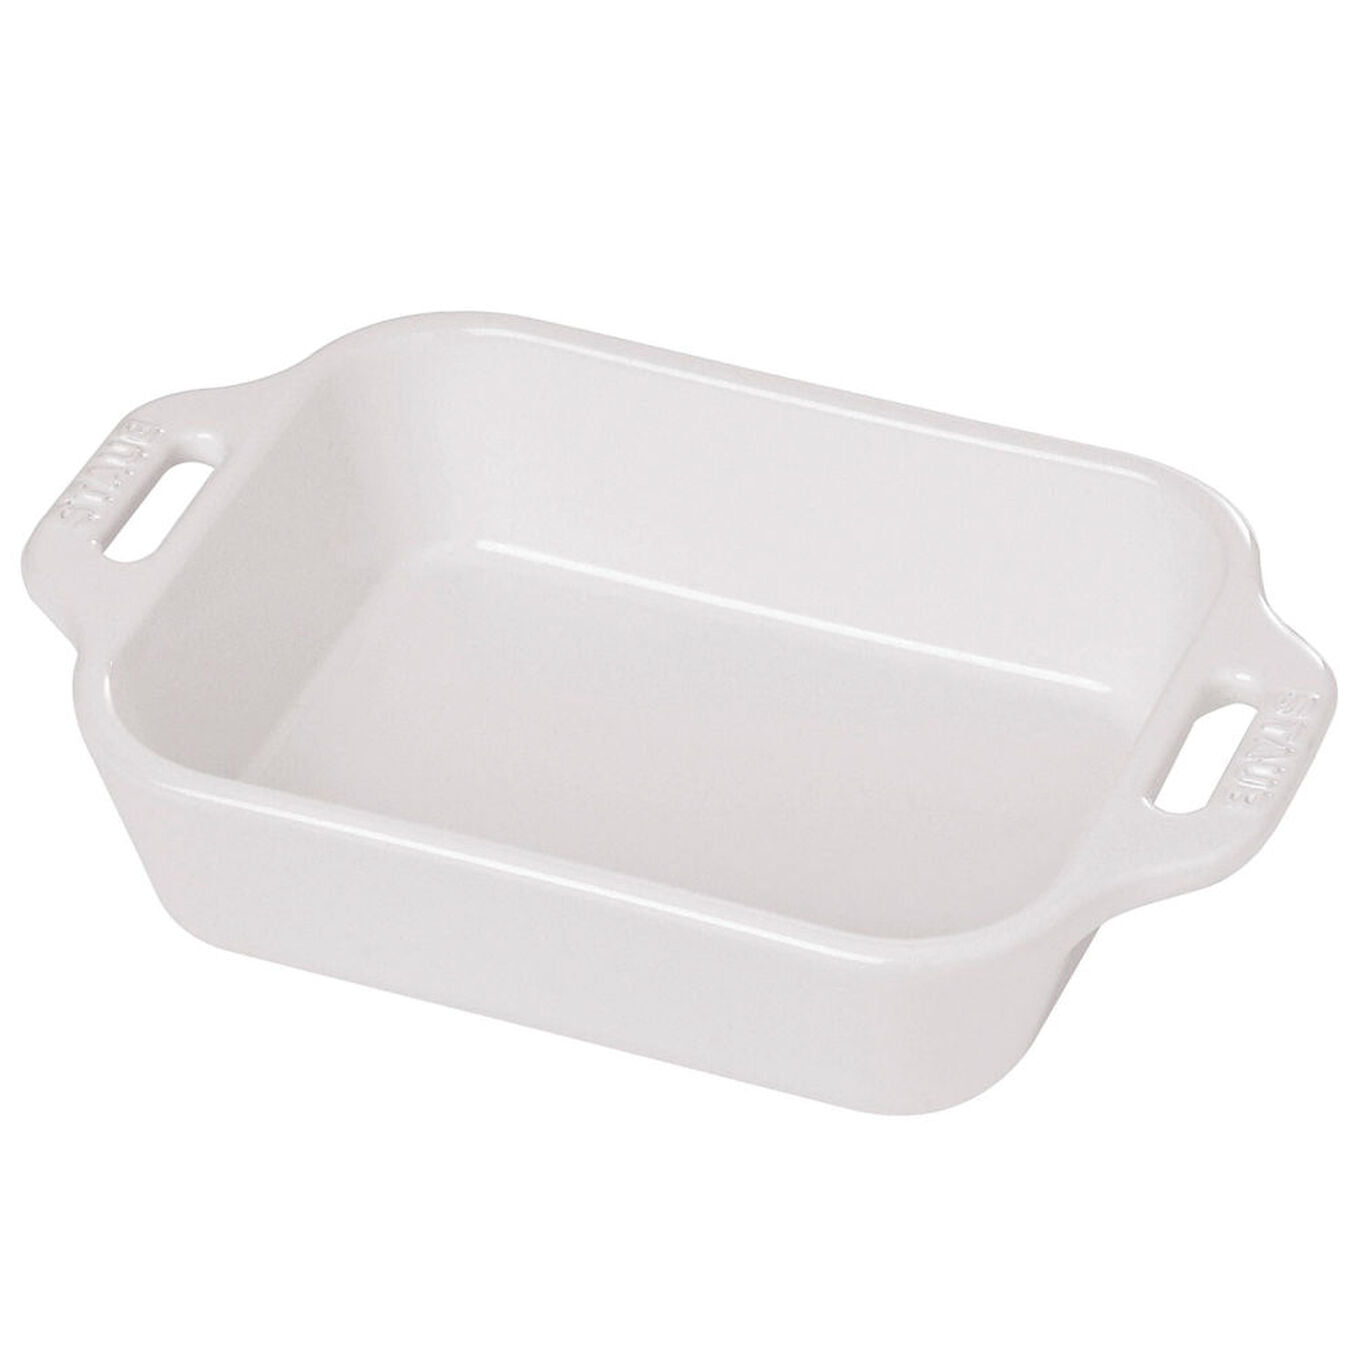 9x13 Baking Dish - White